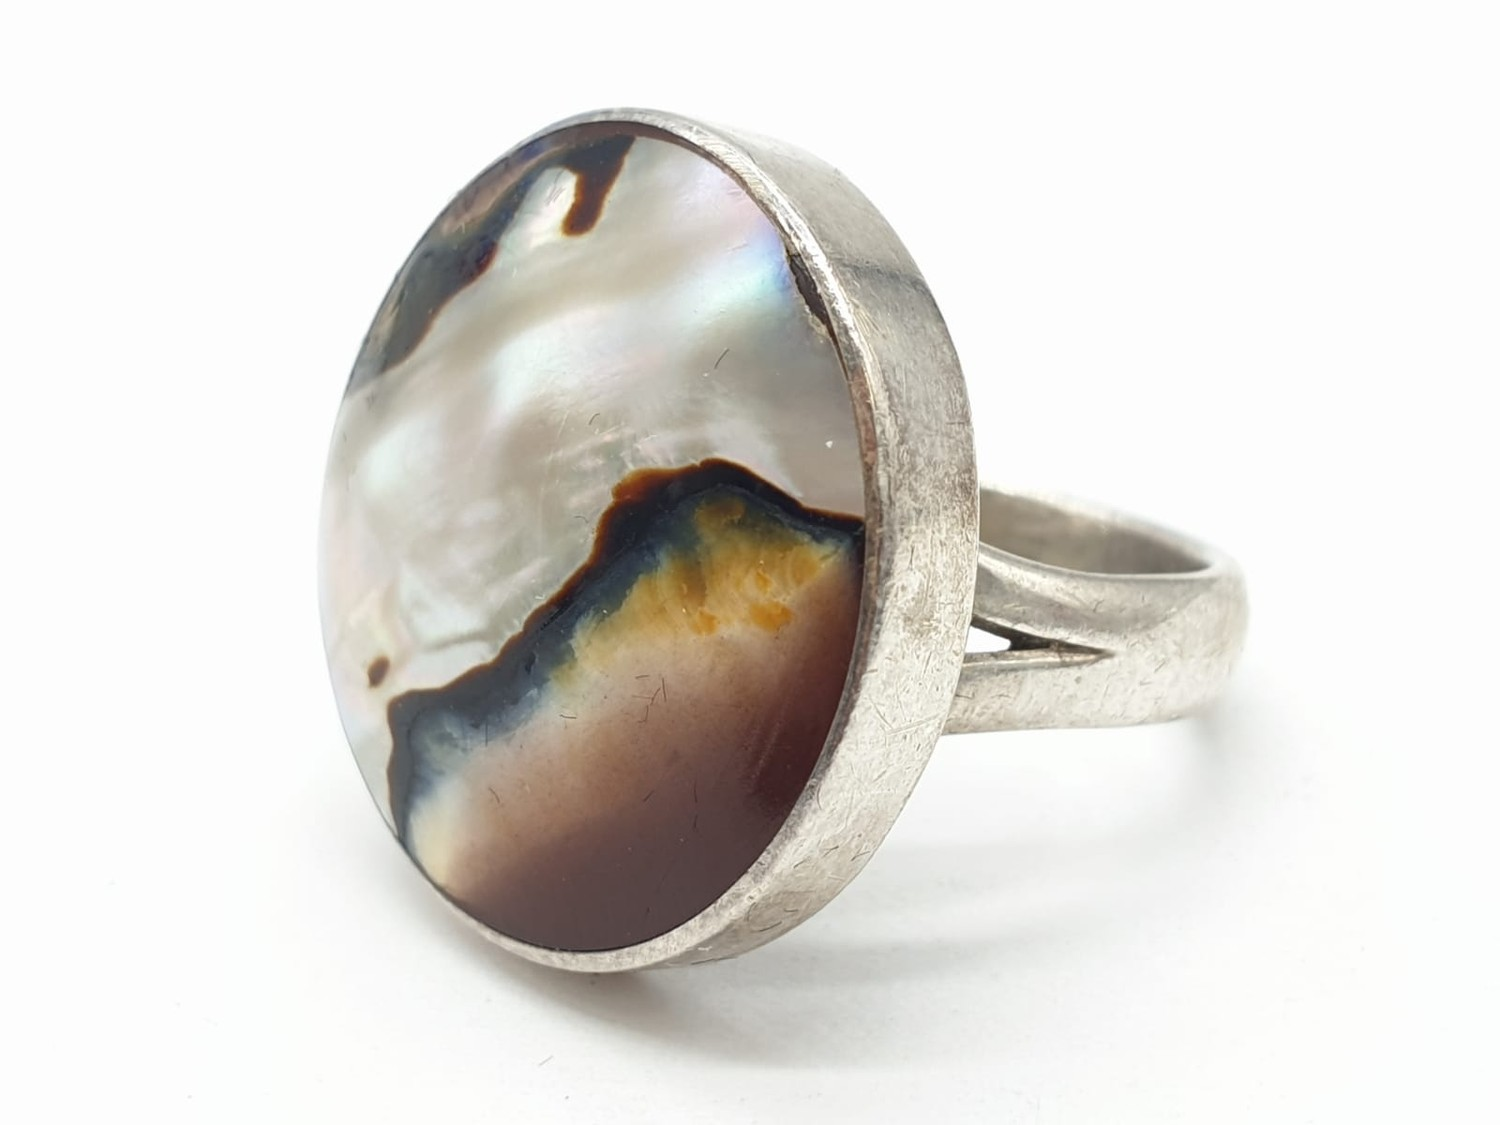 Silver ring having large circular Agate stone to top. Size L. - Image 2 of 6